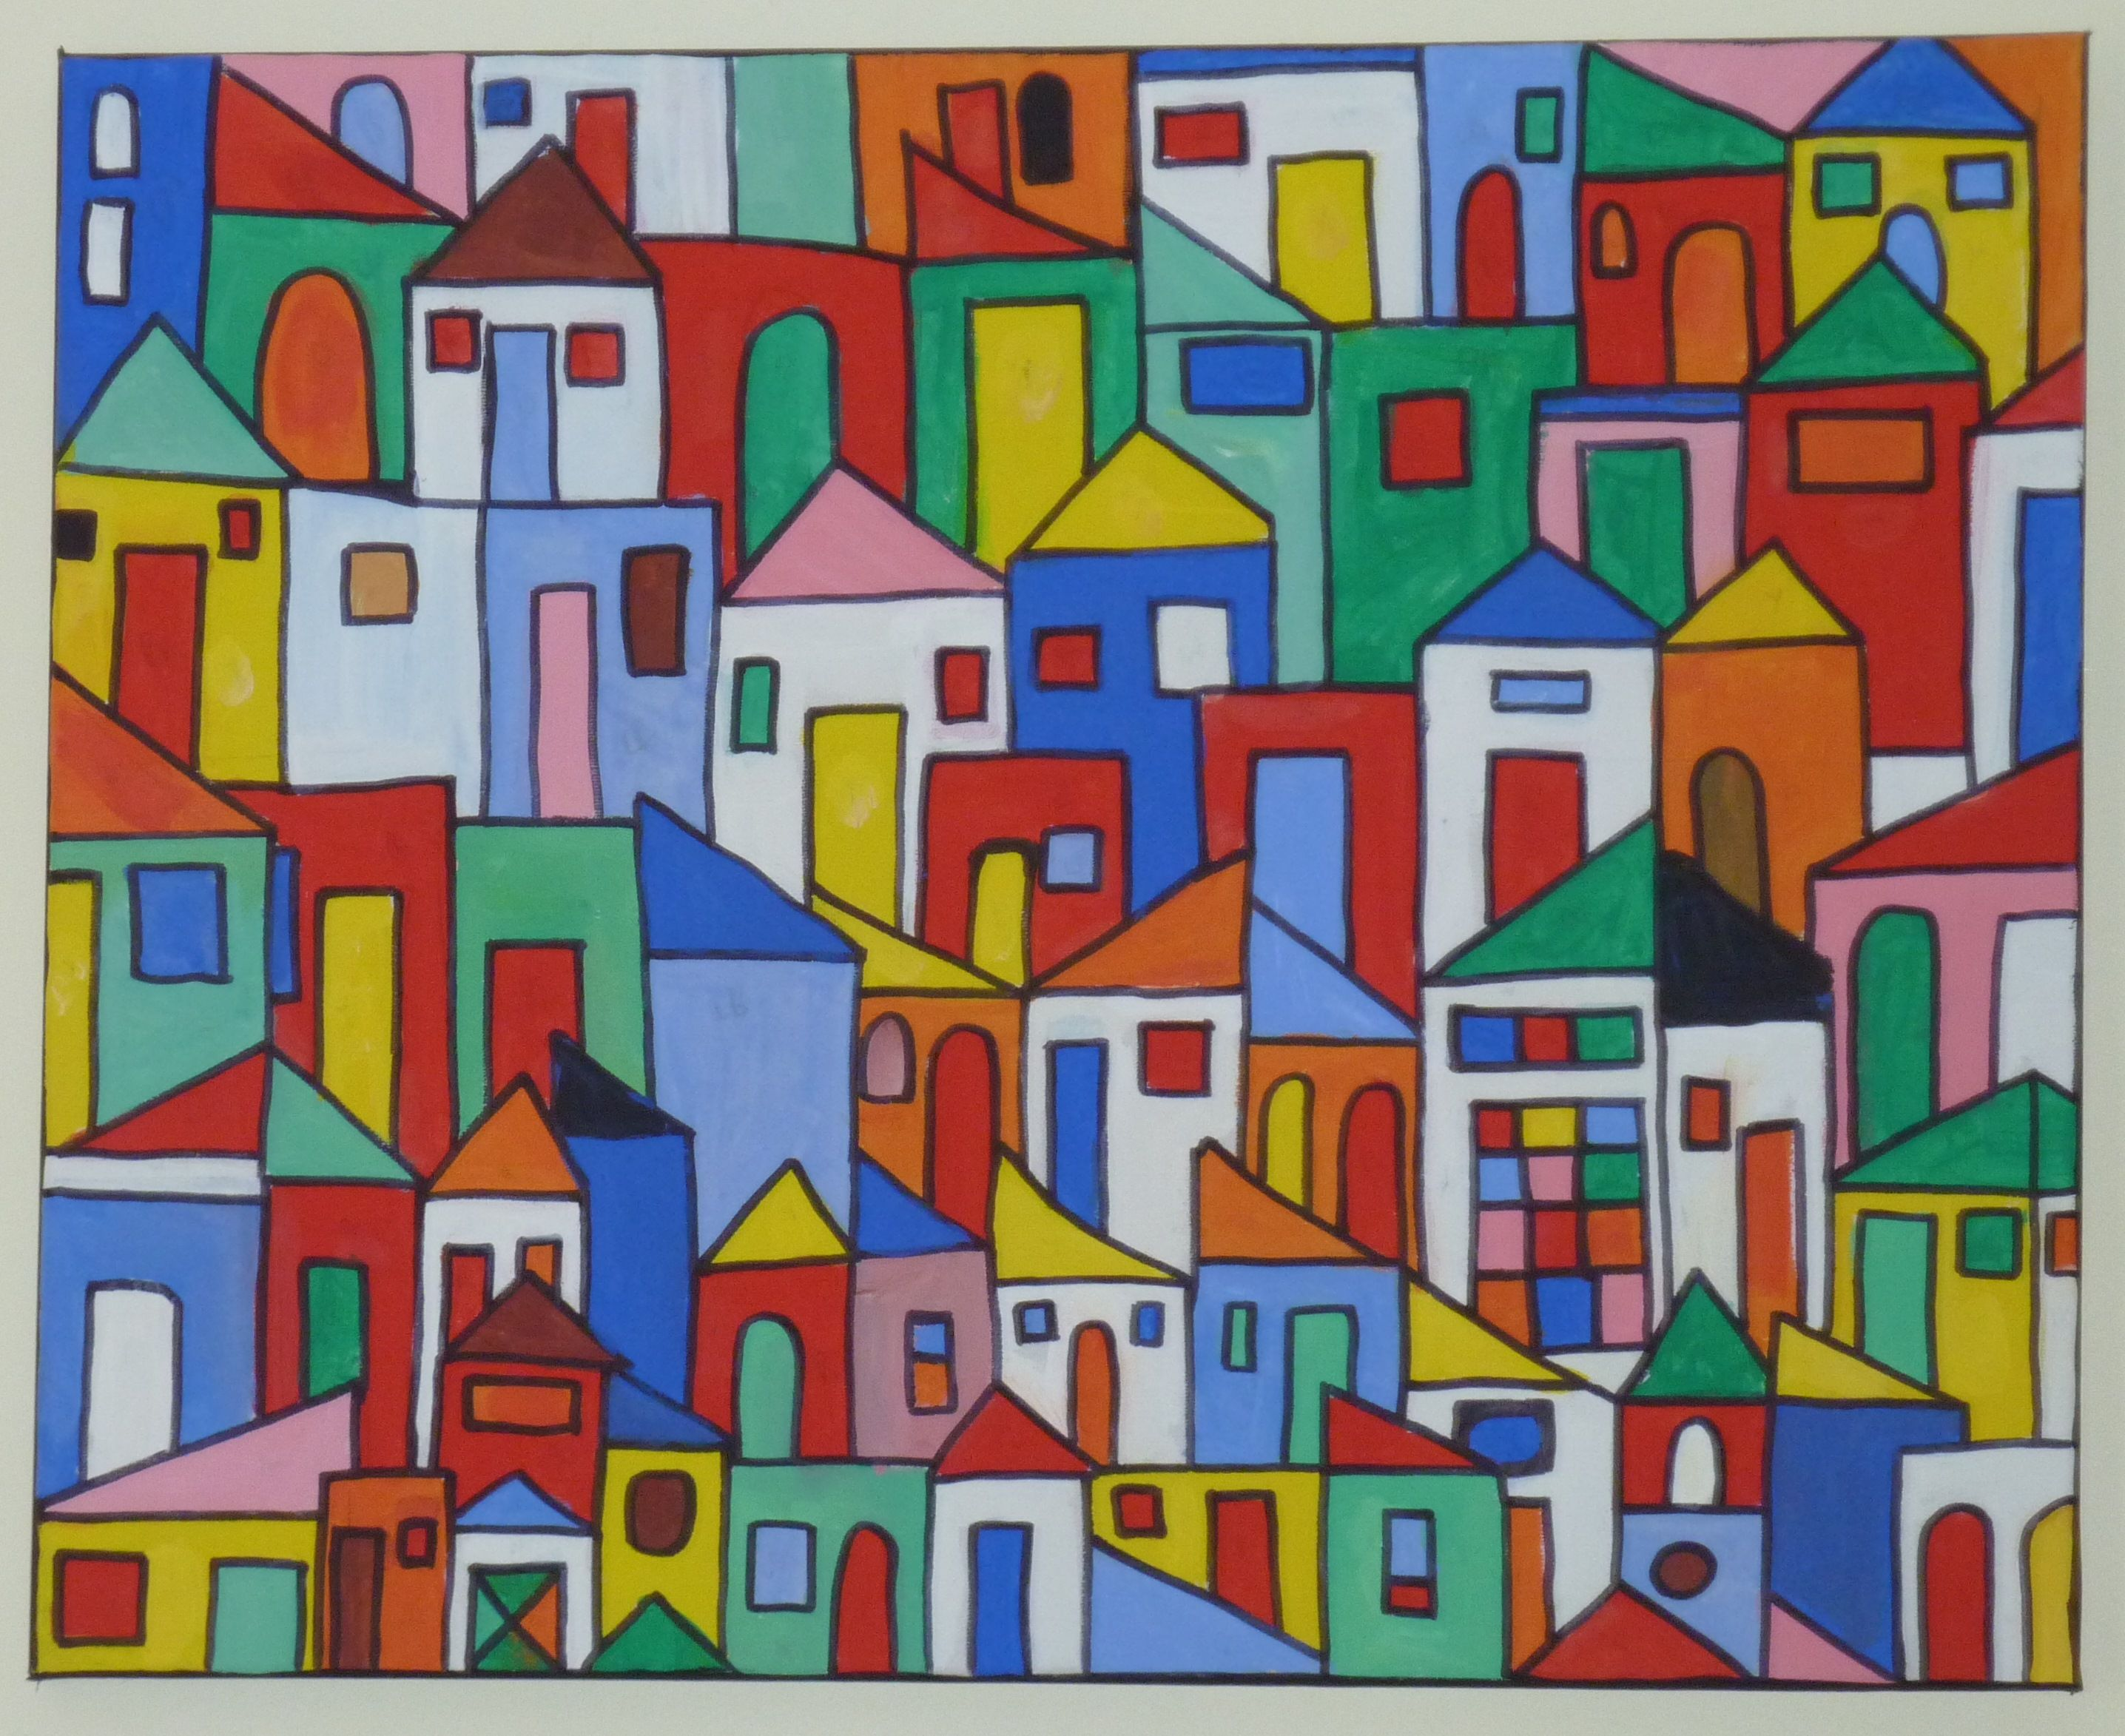 Rio favelas painting - Rhiannon Crafts | Street Art | Pinterest